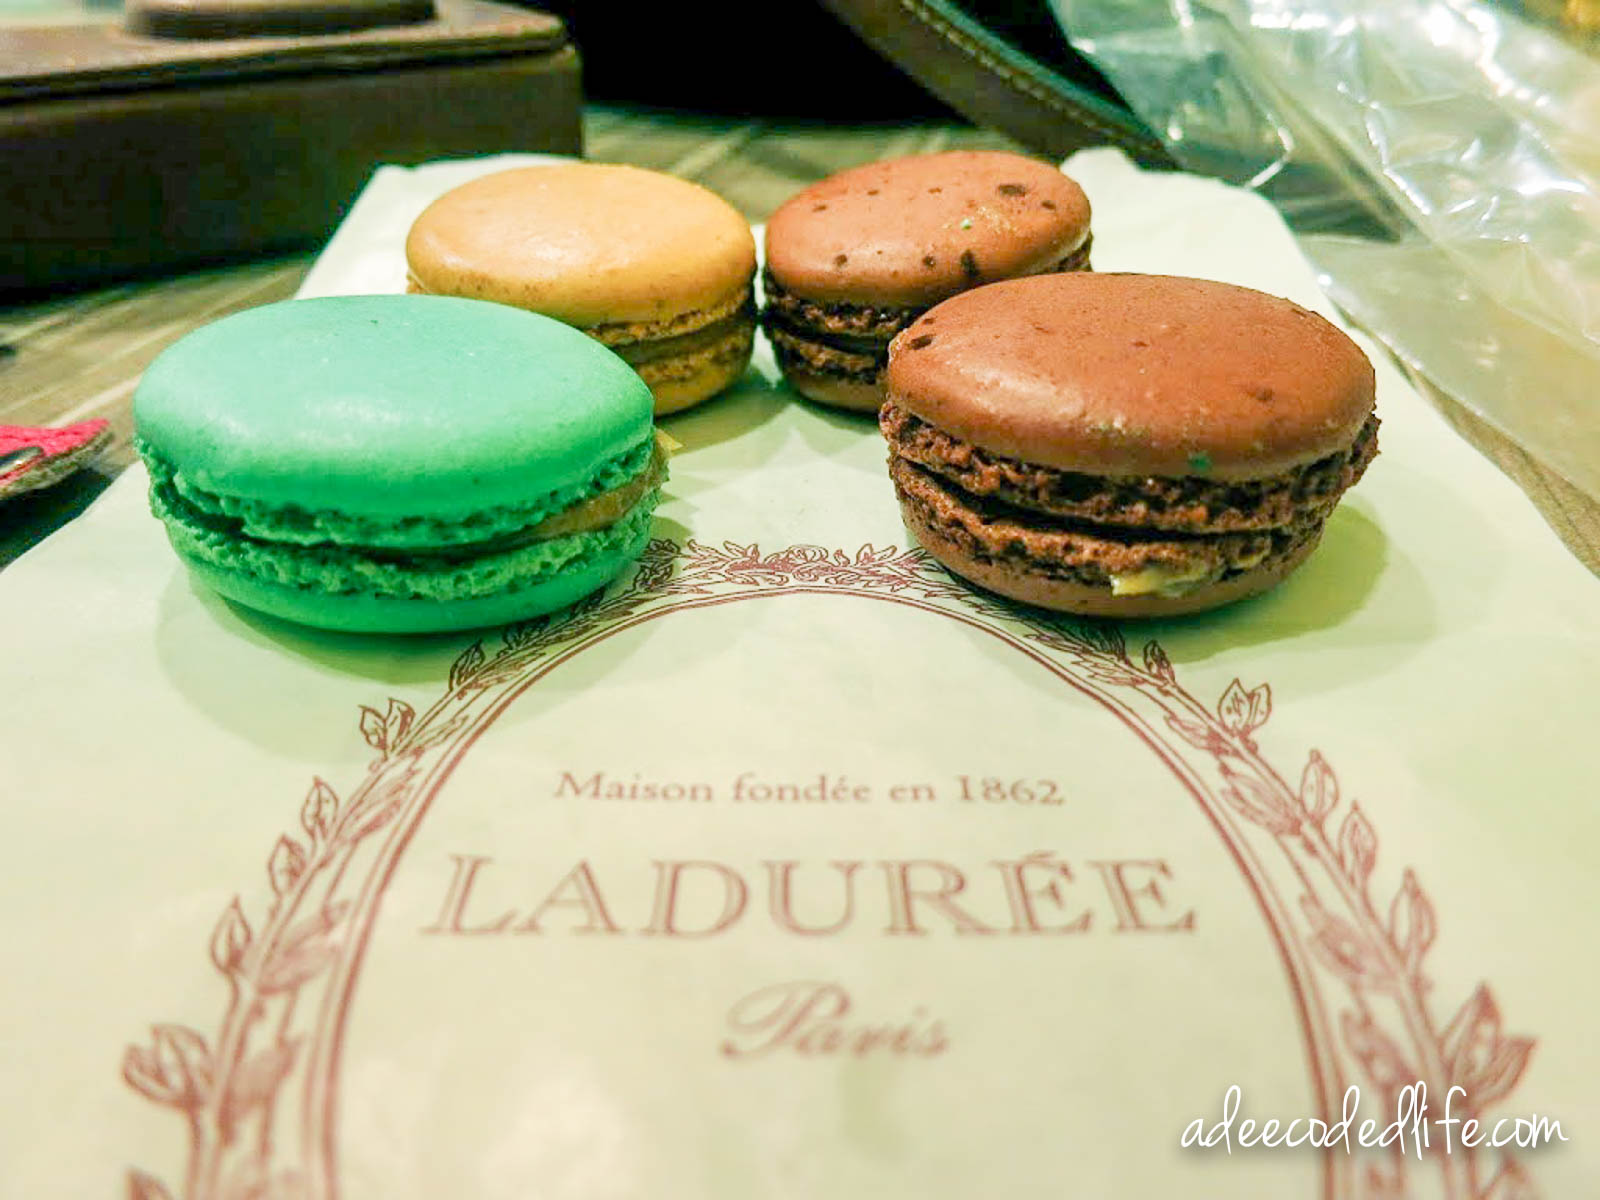 Laduree Singapore (Food Review) - A Deecoded Life